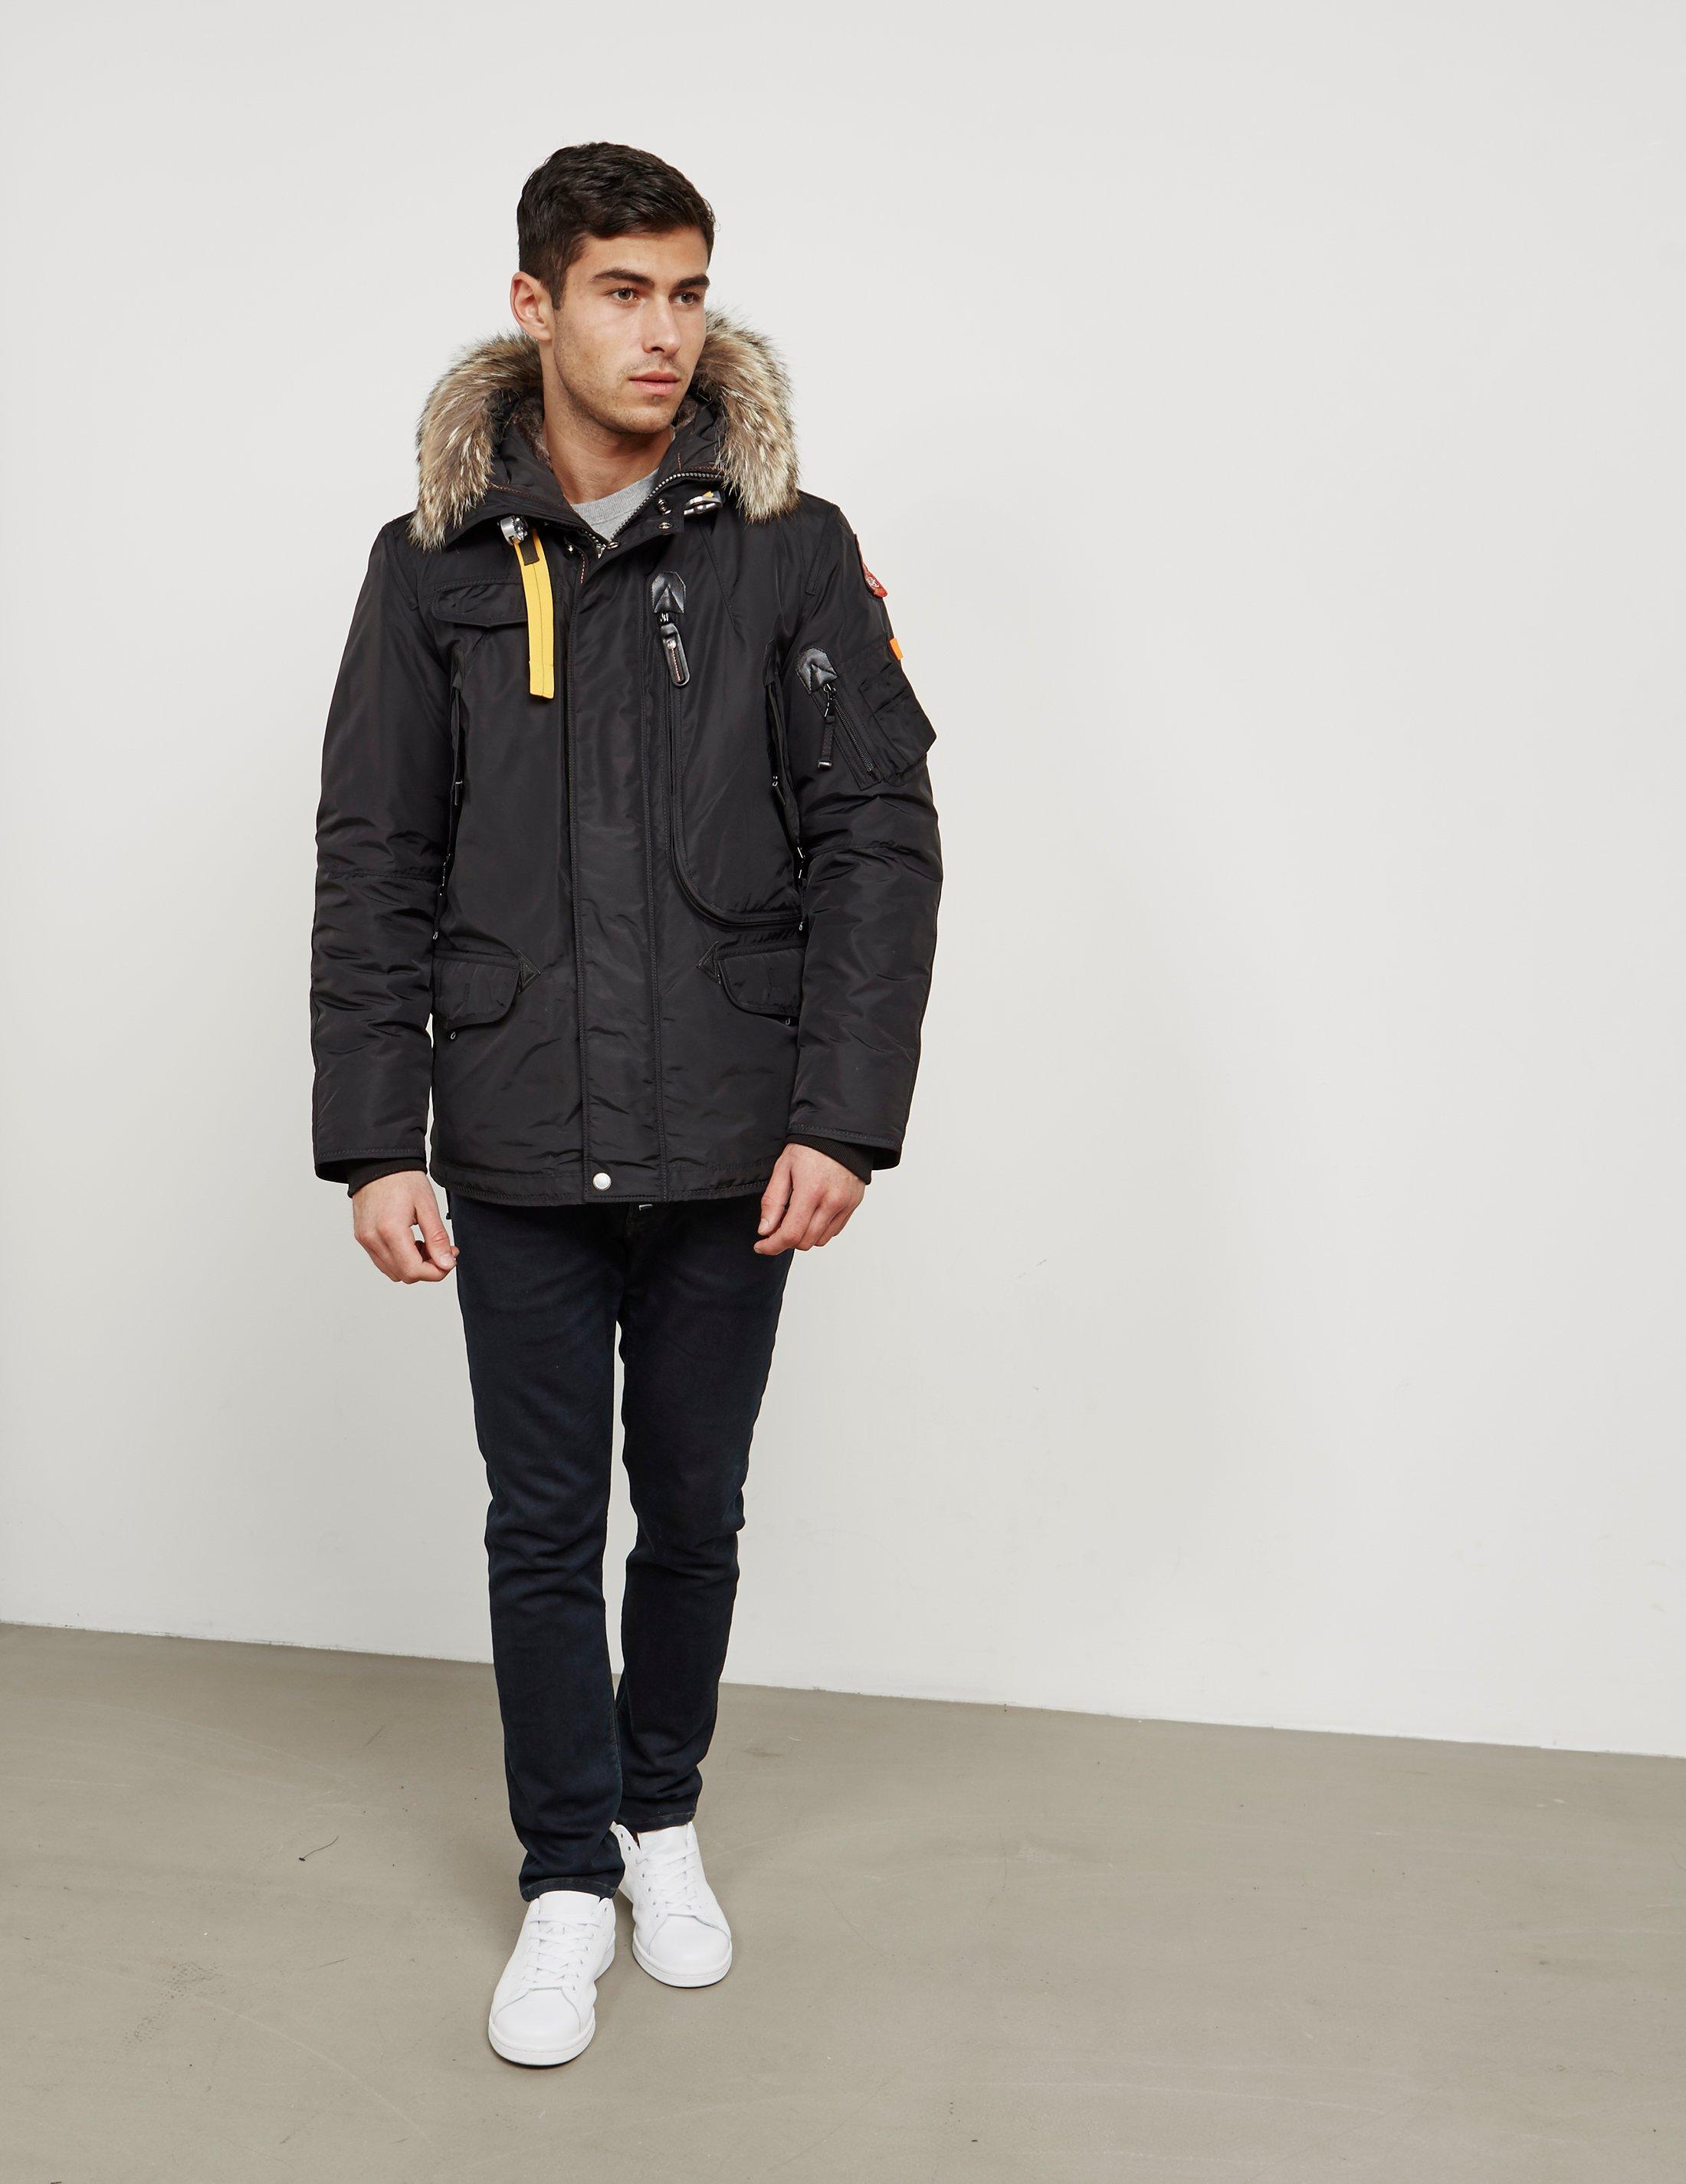 parajumpers jacket right hand in black